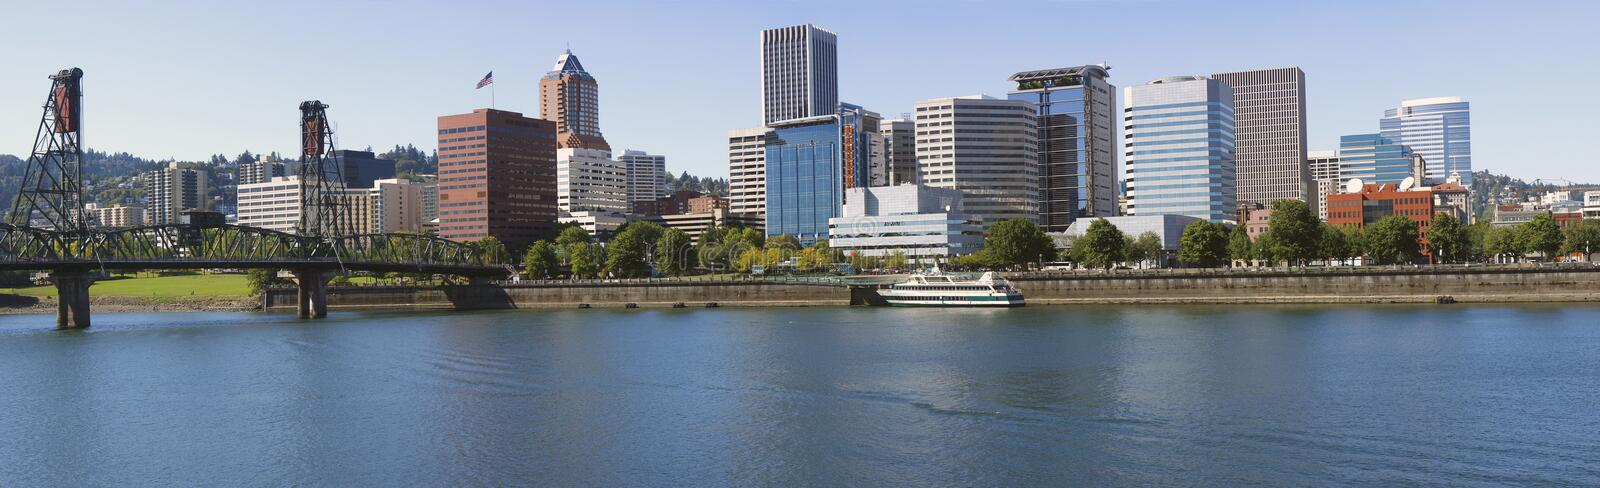 Portland OR Skyline. stock photos